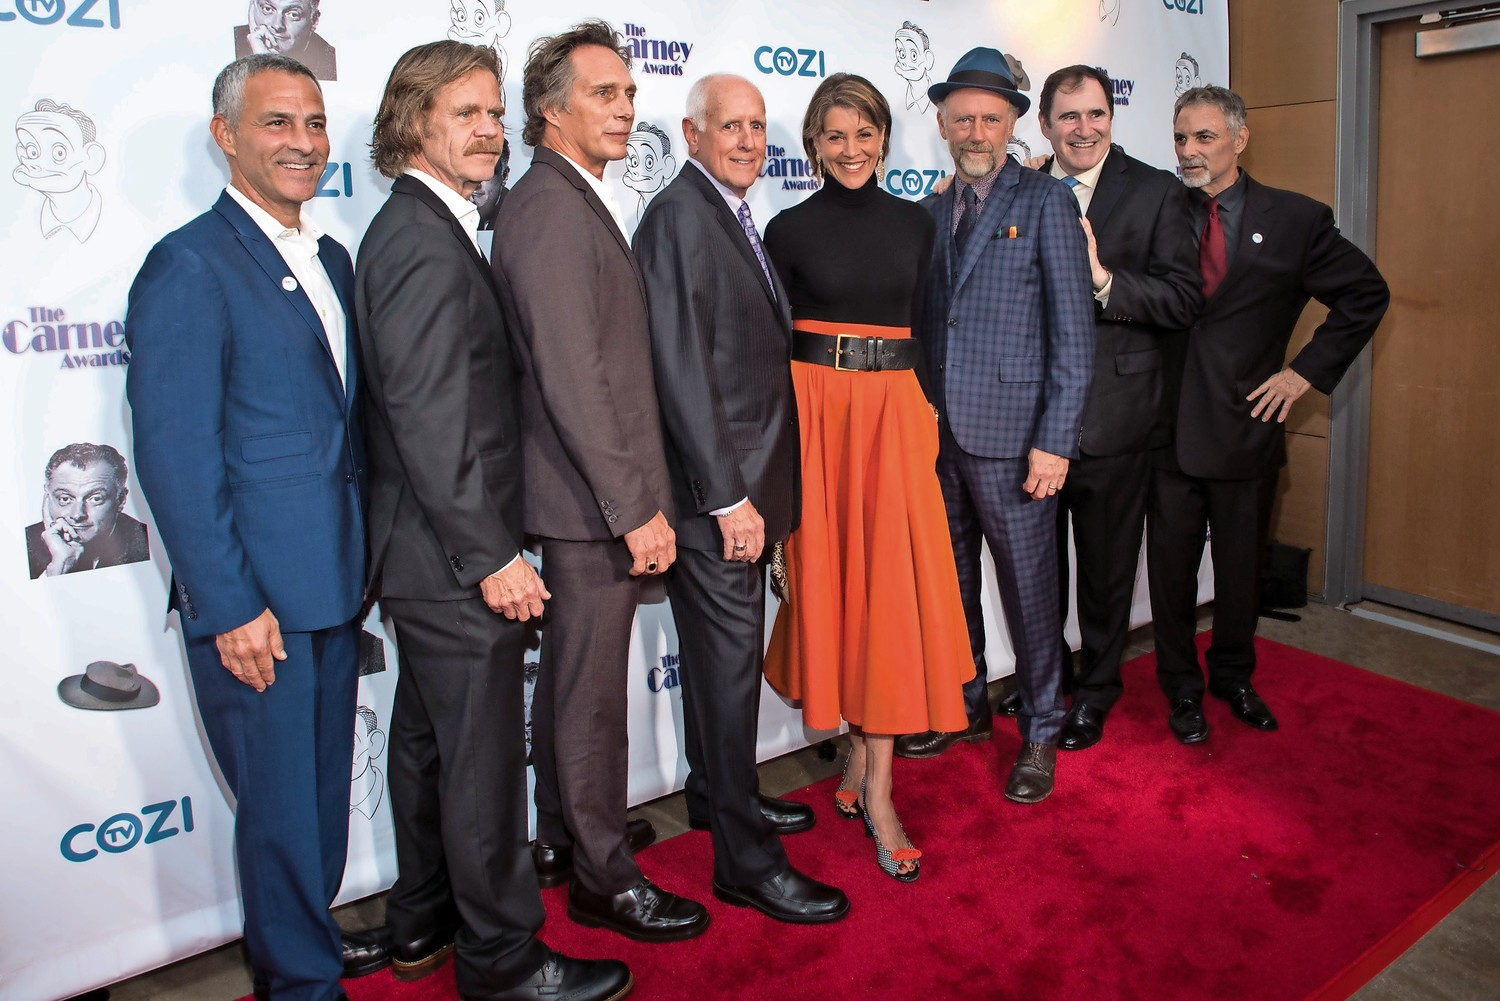 Last year's Carney Awards featured William H. Macy, second from left, William Fichtner, Brian Carney, Wendie Malick, Xander Berkeley and Richard Kind. Island Park brothers David and Jim Katz, far left and far right, created the event and brought it to the Broad Stage in Santa Monica, Calif.